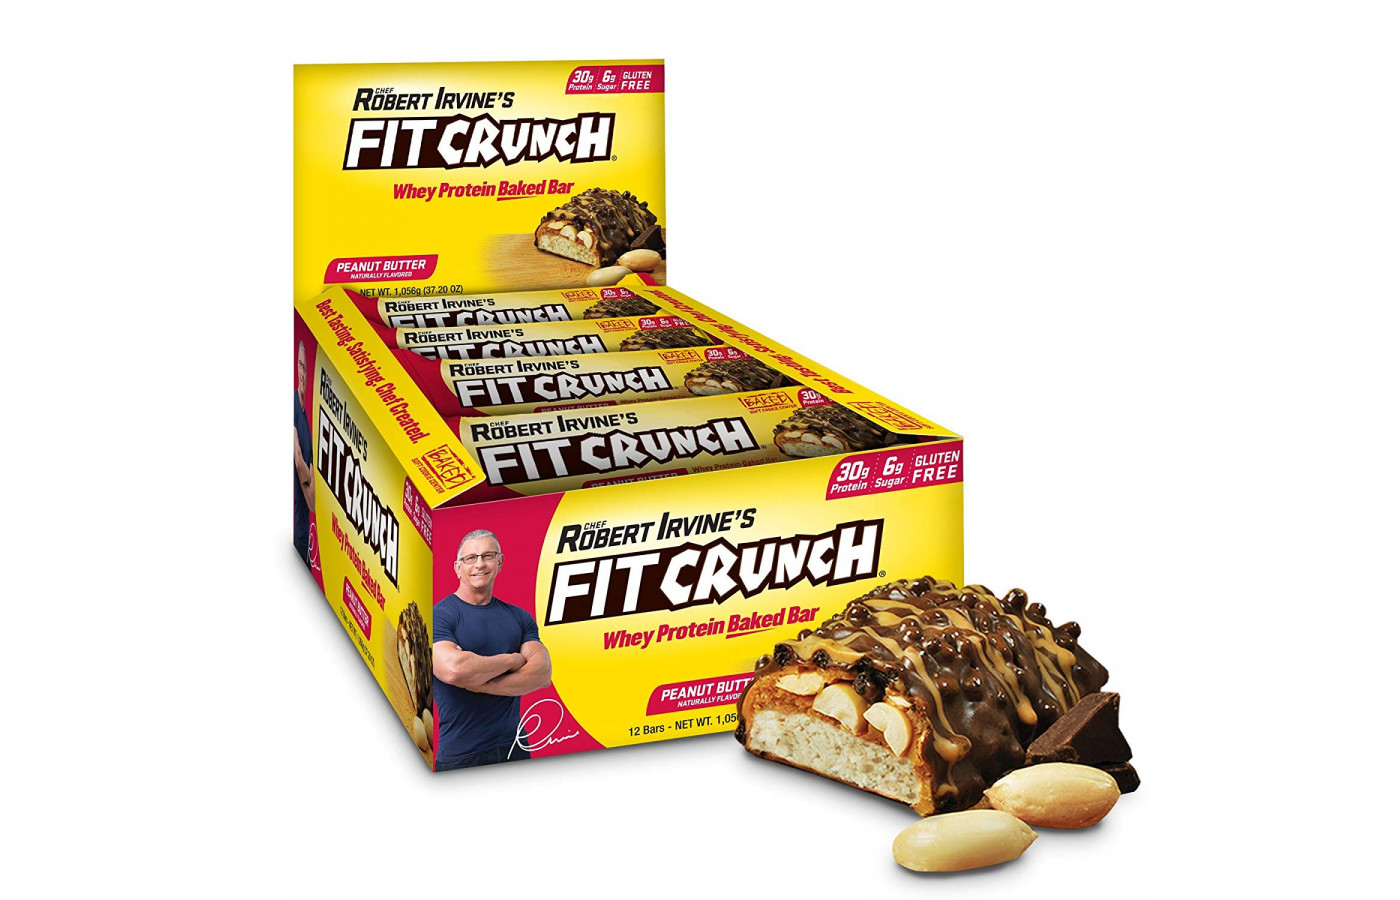 Robert Irvine's FIT Crunch Bar Reviewed in 2019 | FightingReport